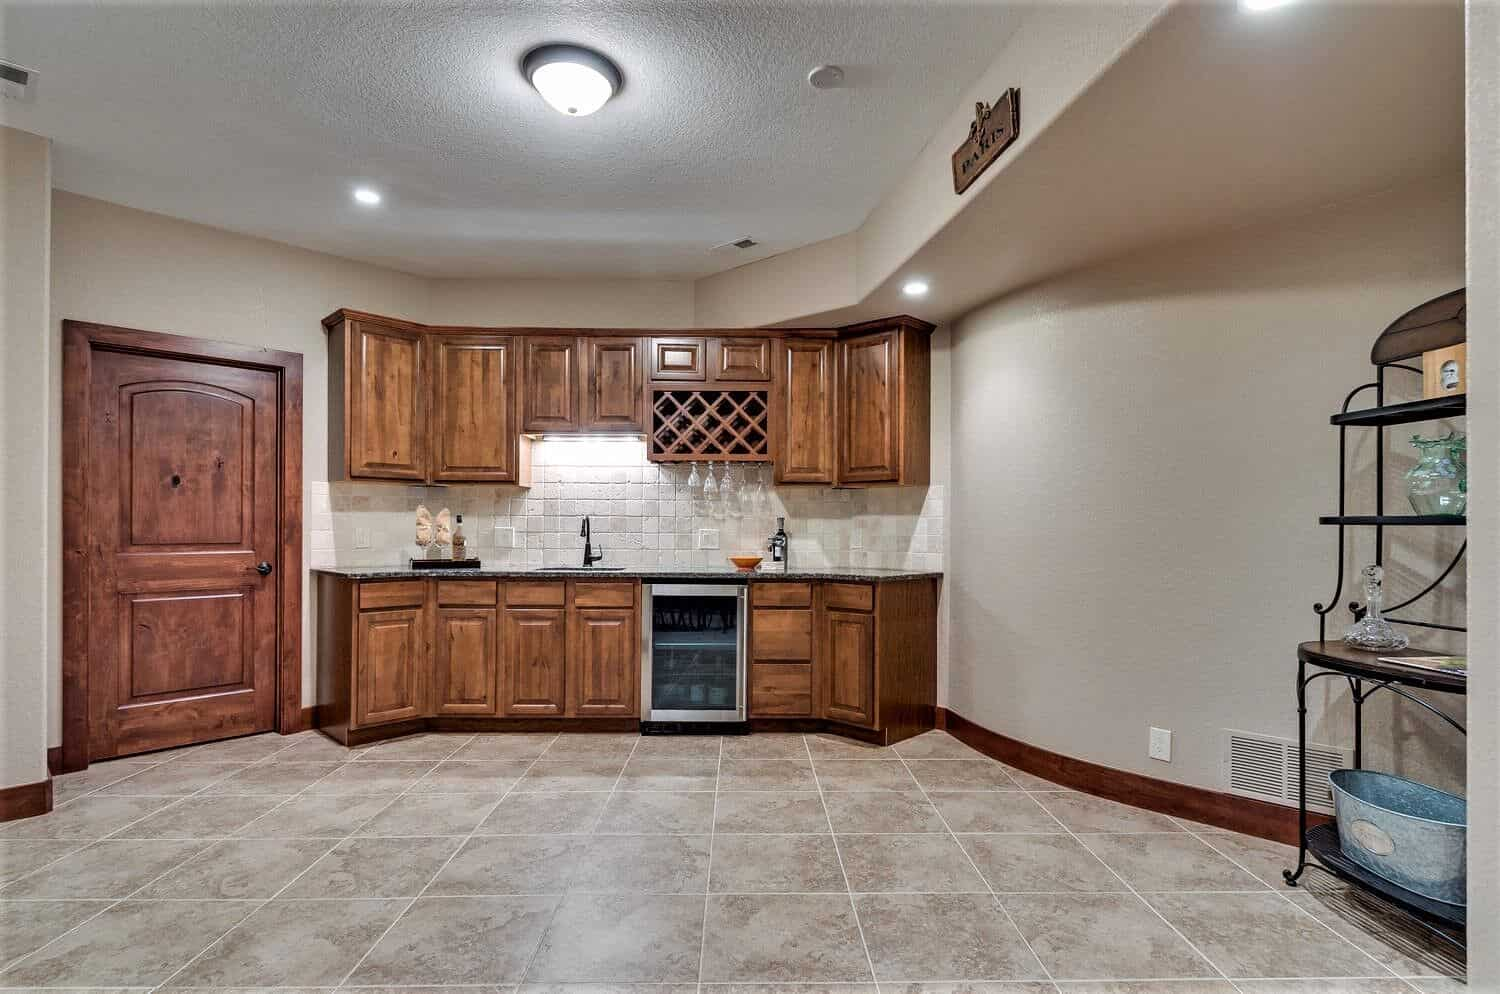 Large Basement Wet Bar Kitchenette Area